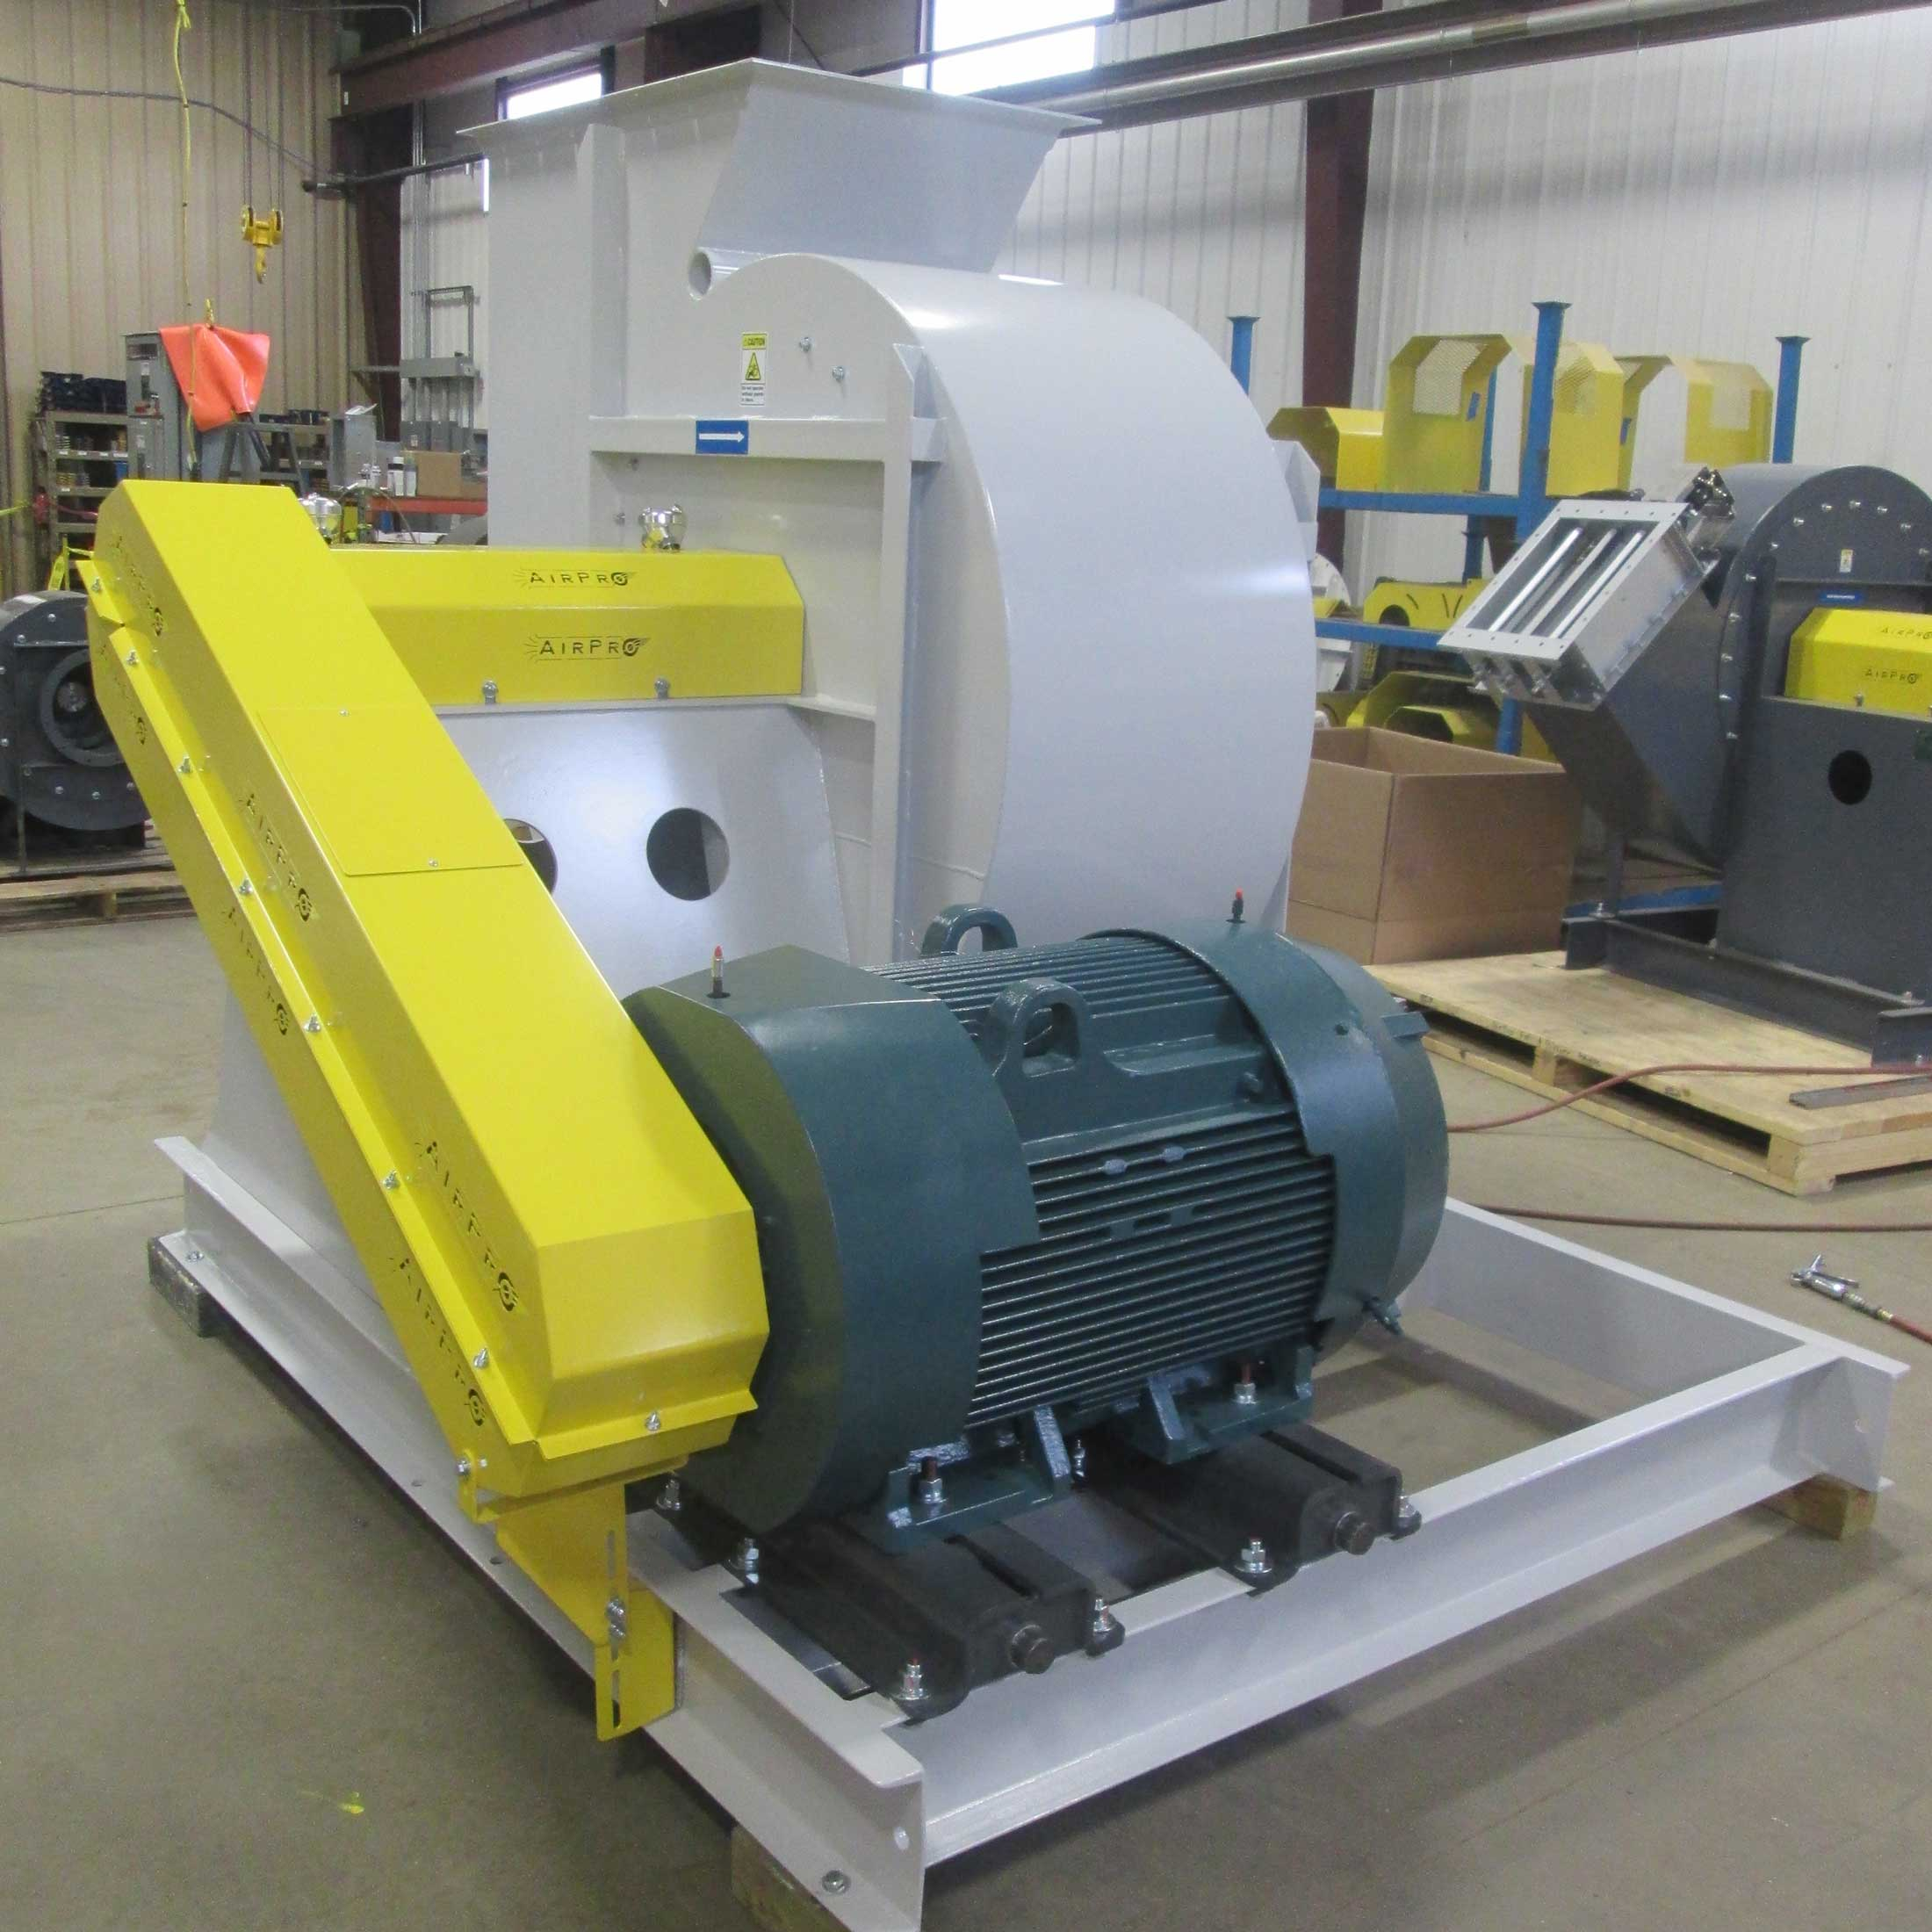 Radial High Pressure Blower : Radial tipped fan airpro blower co